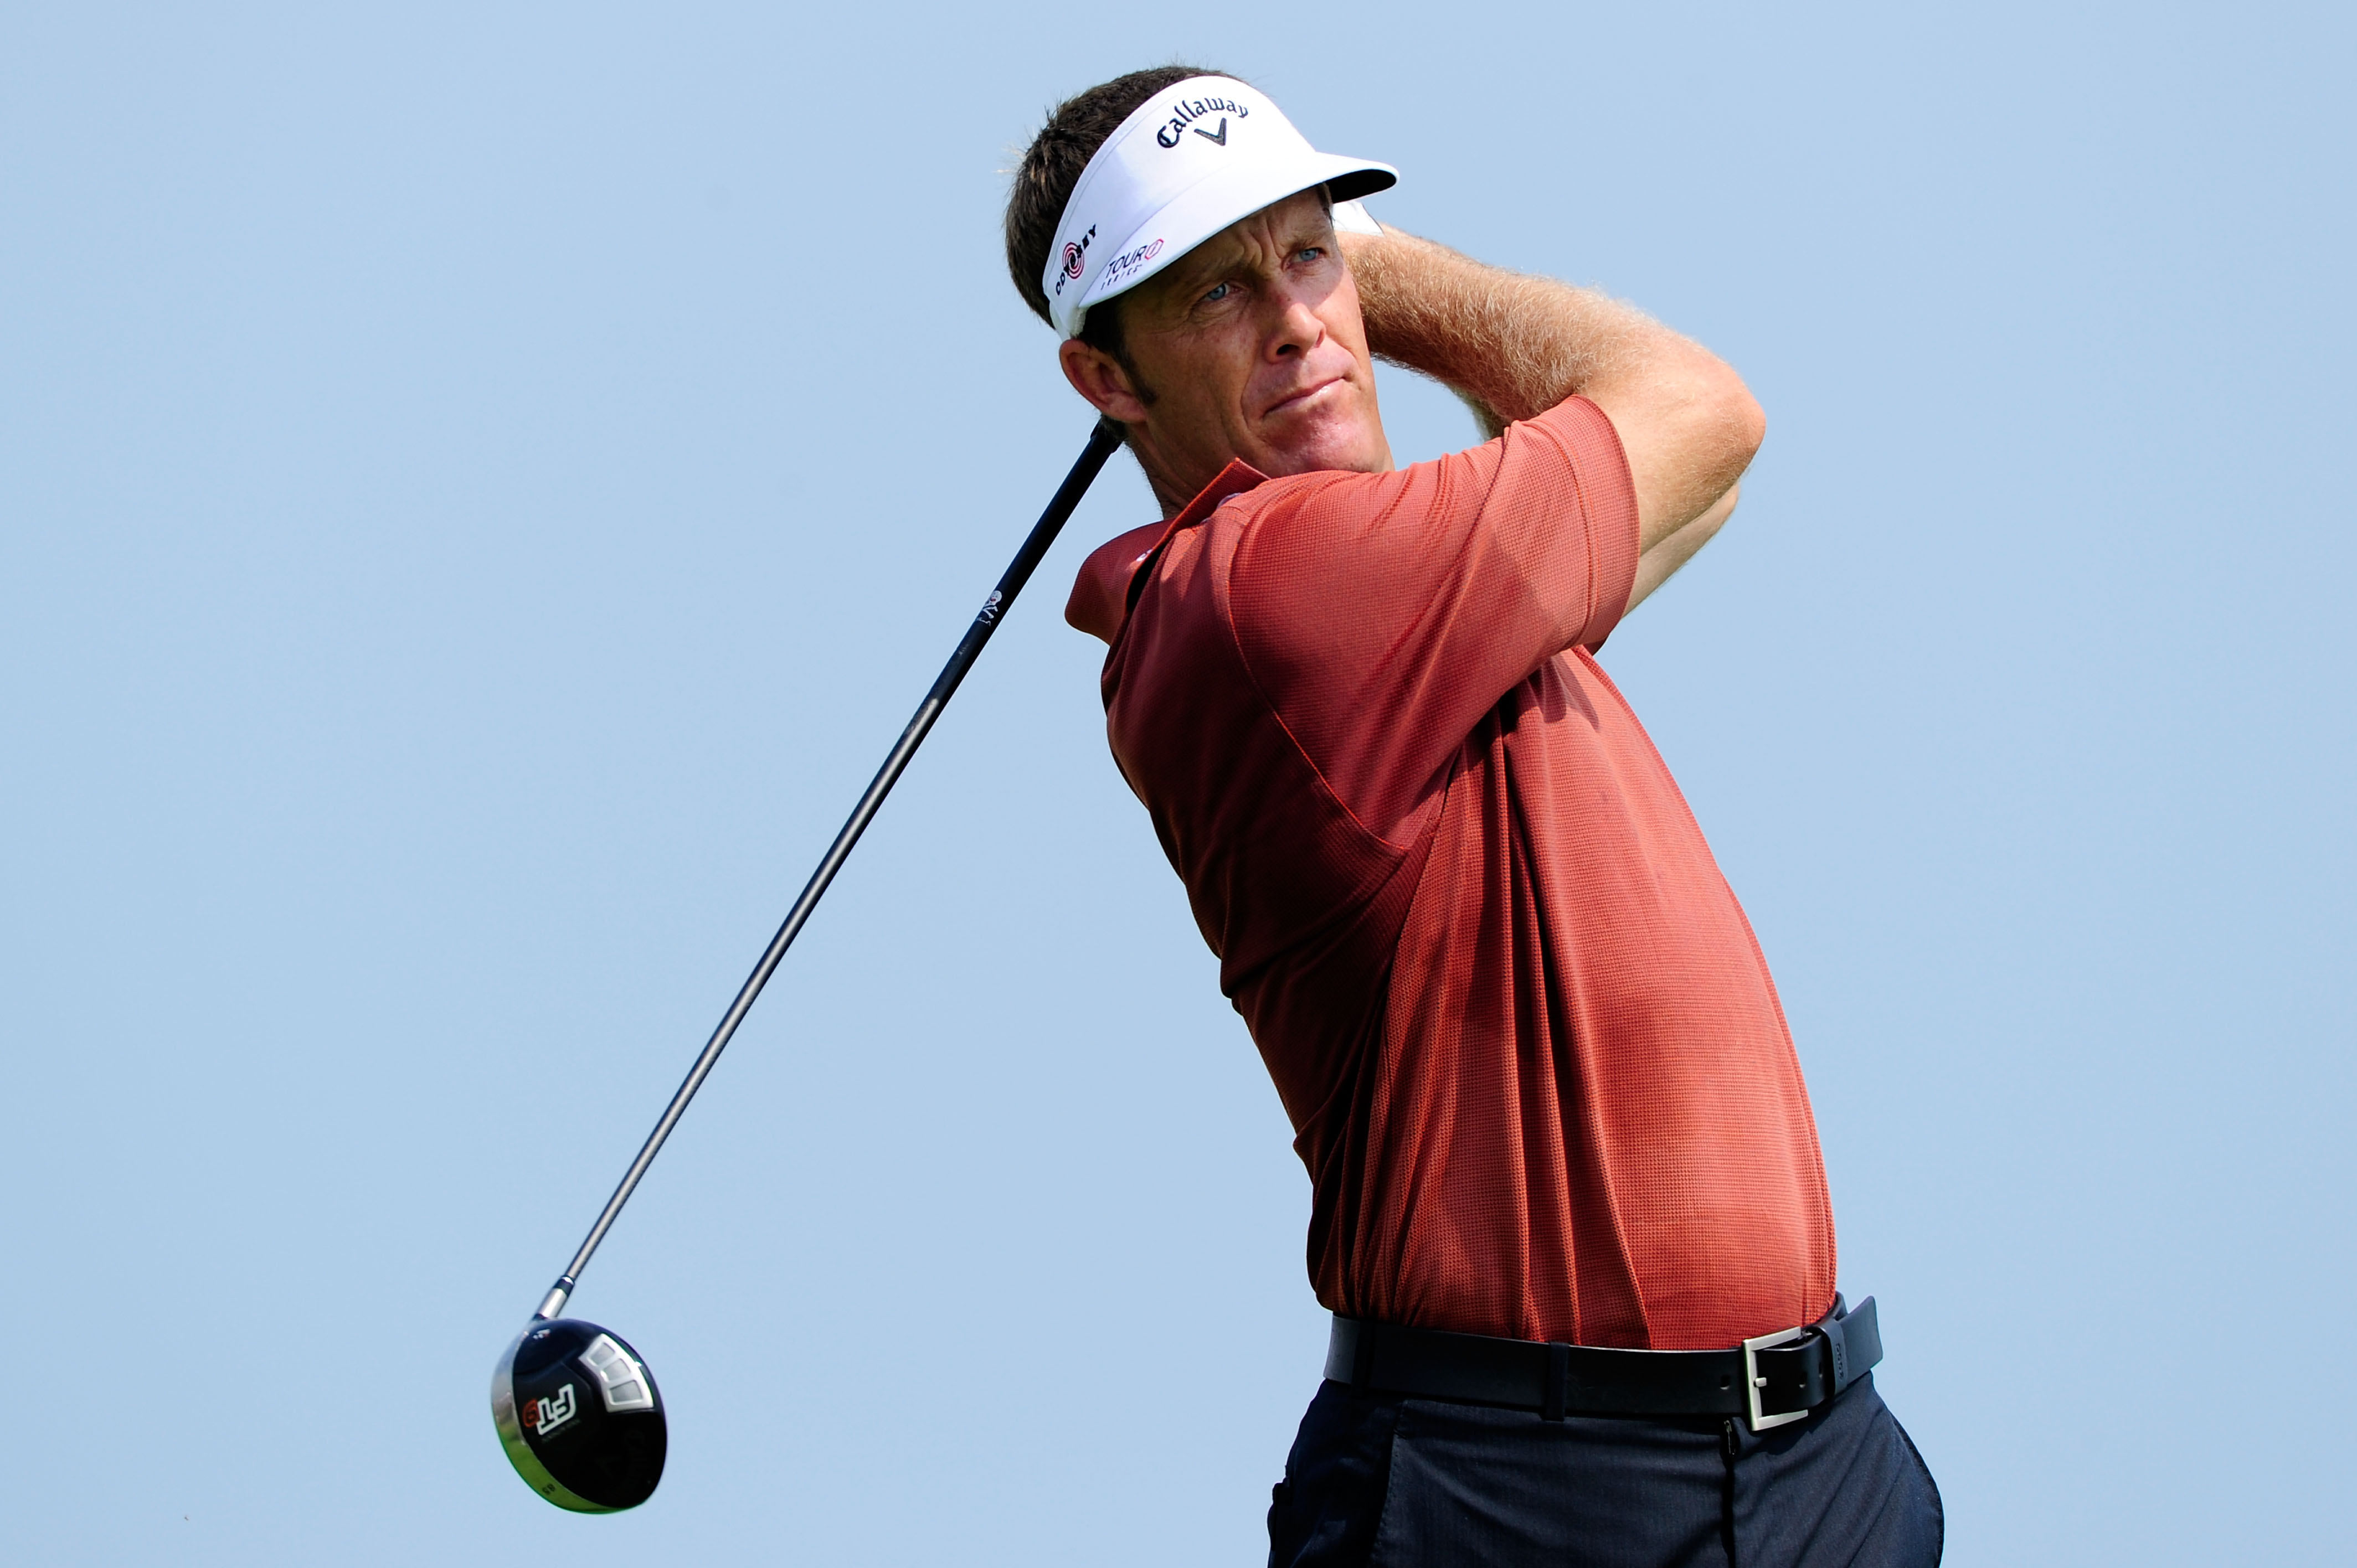 KOHLER, WI - AUGUST 10:  Stuart Appleby of Australia hits a tee shot during a practice round prior to the start of the 92nd PGA Championship on the Straits Course at Whistling Straits on August 10, 2010 in Kohler, Wisconsin.  (Photo by Stuart Franklin/Get